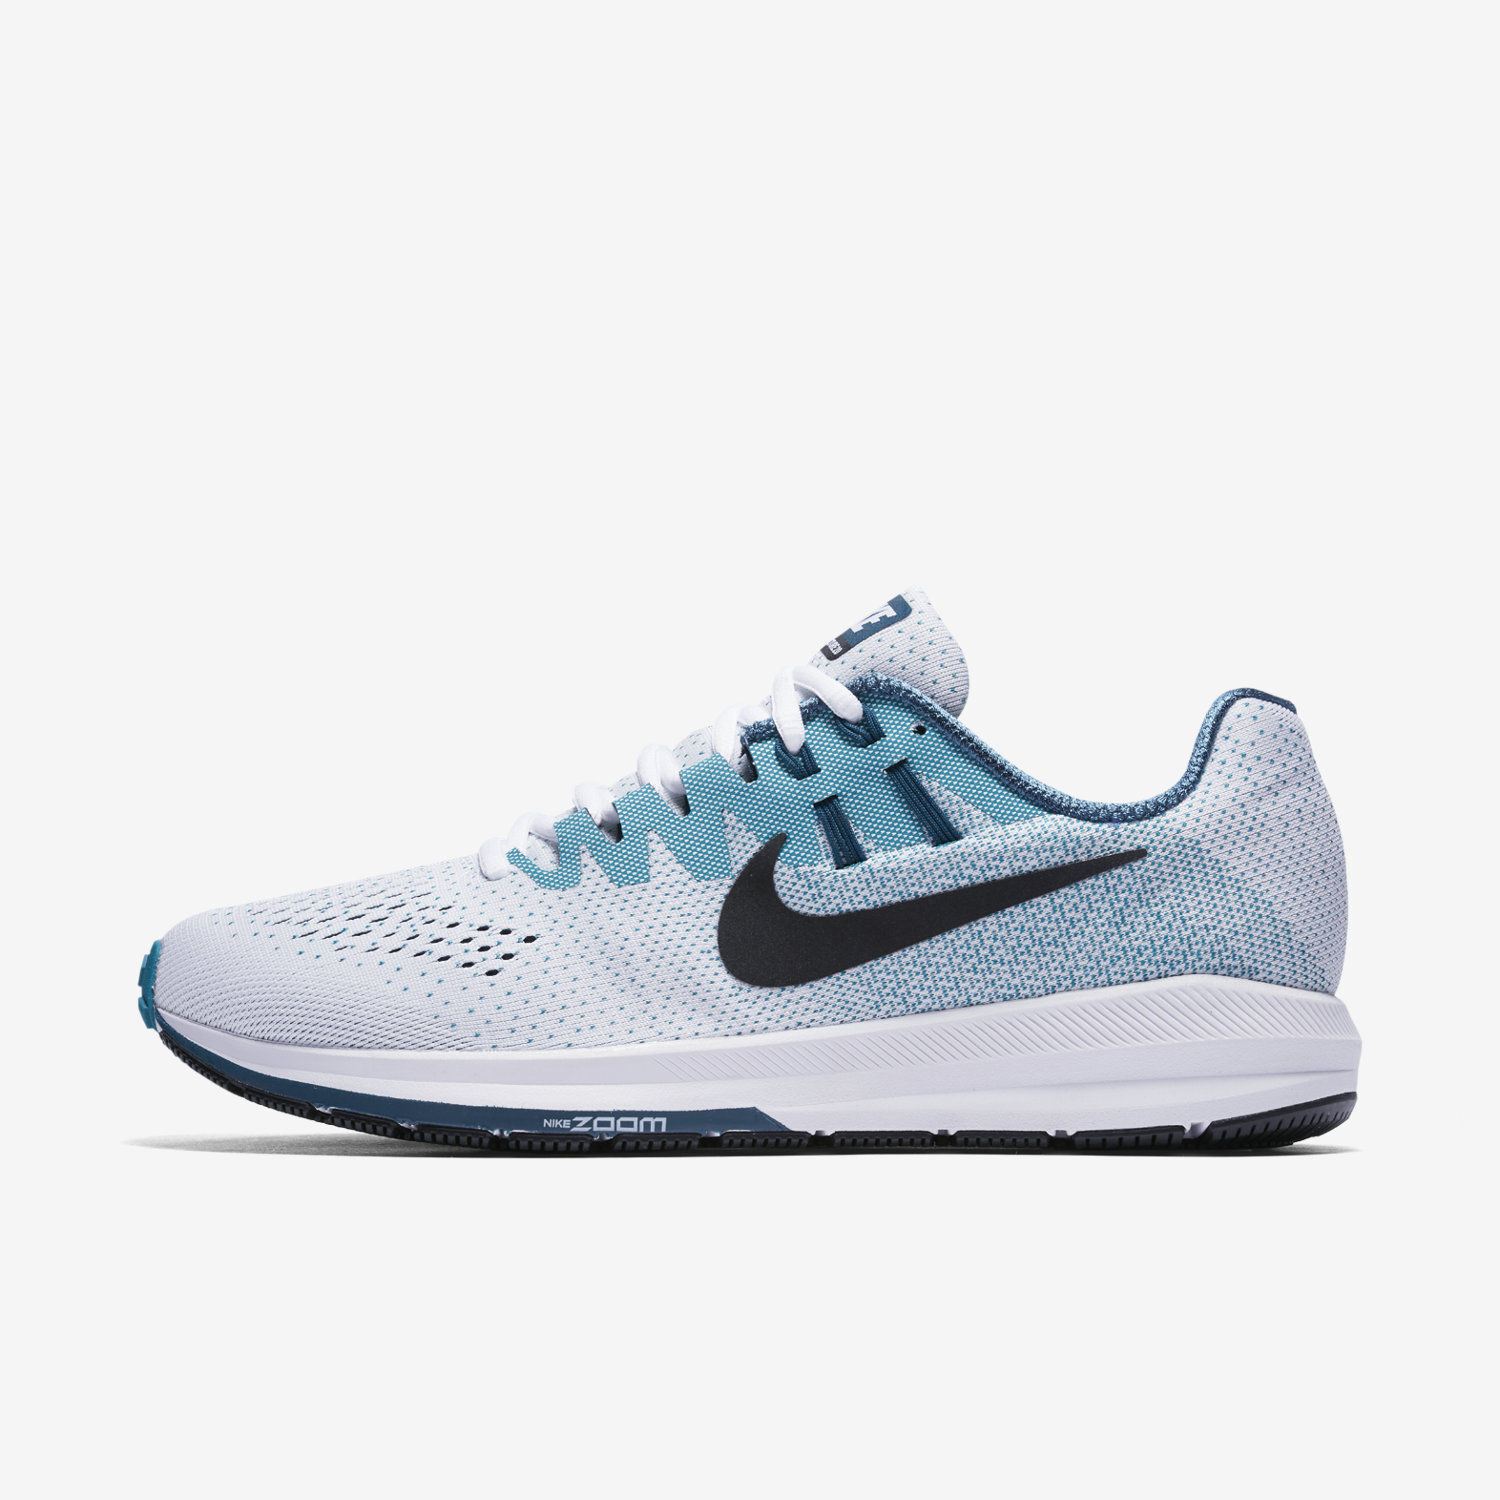 MEN'S NIKE AIR ZOOM STRUCTURE 20 SHOES SIZE 7 white black bluestery 849576 101